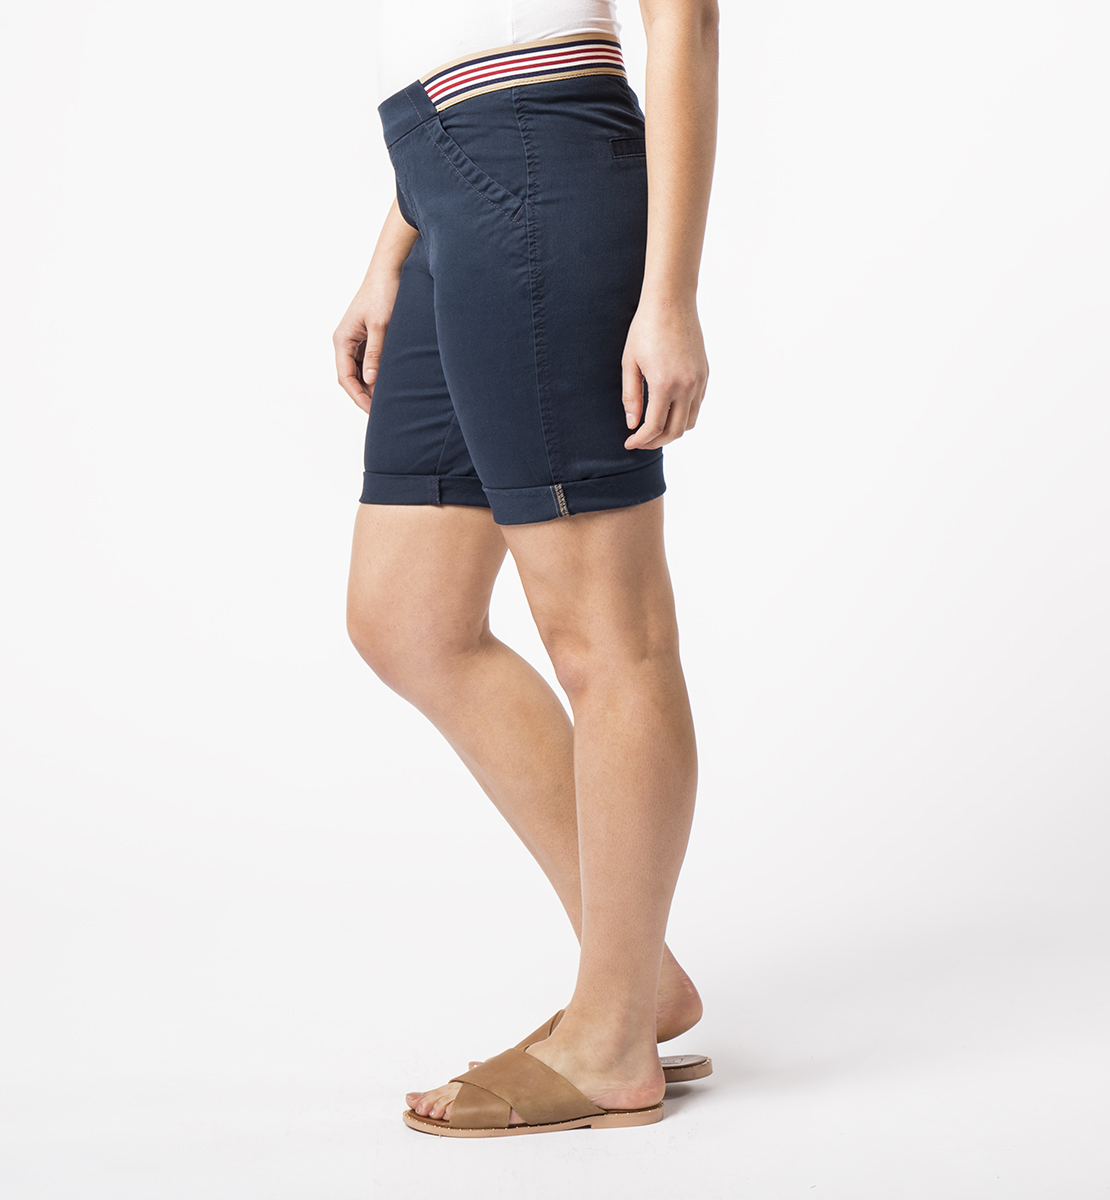 Gracie With Sport Stripe, Nautical Navy, hi-res